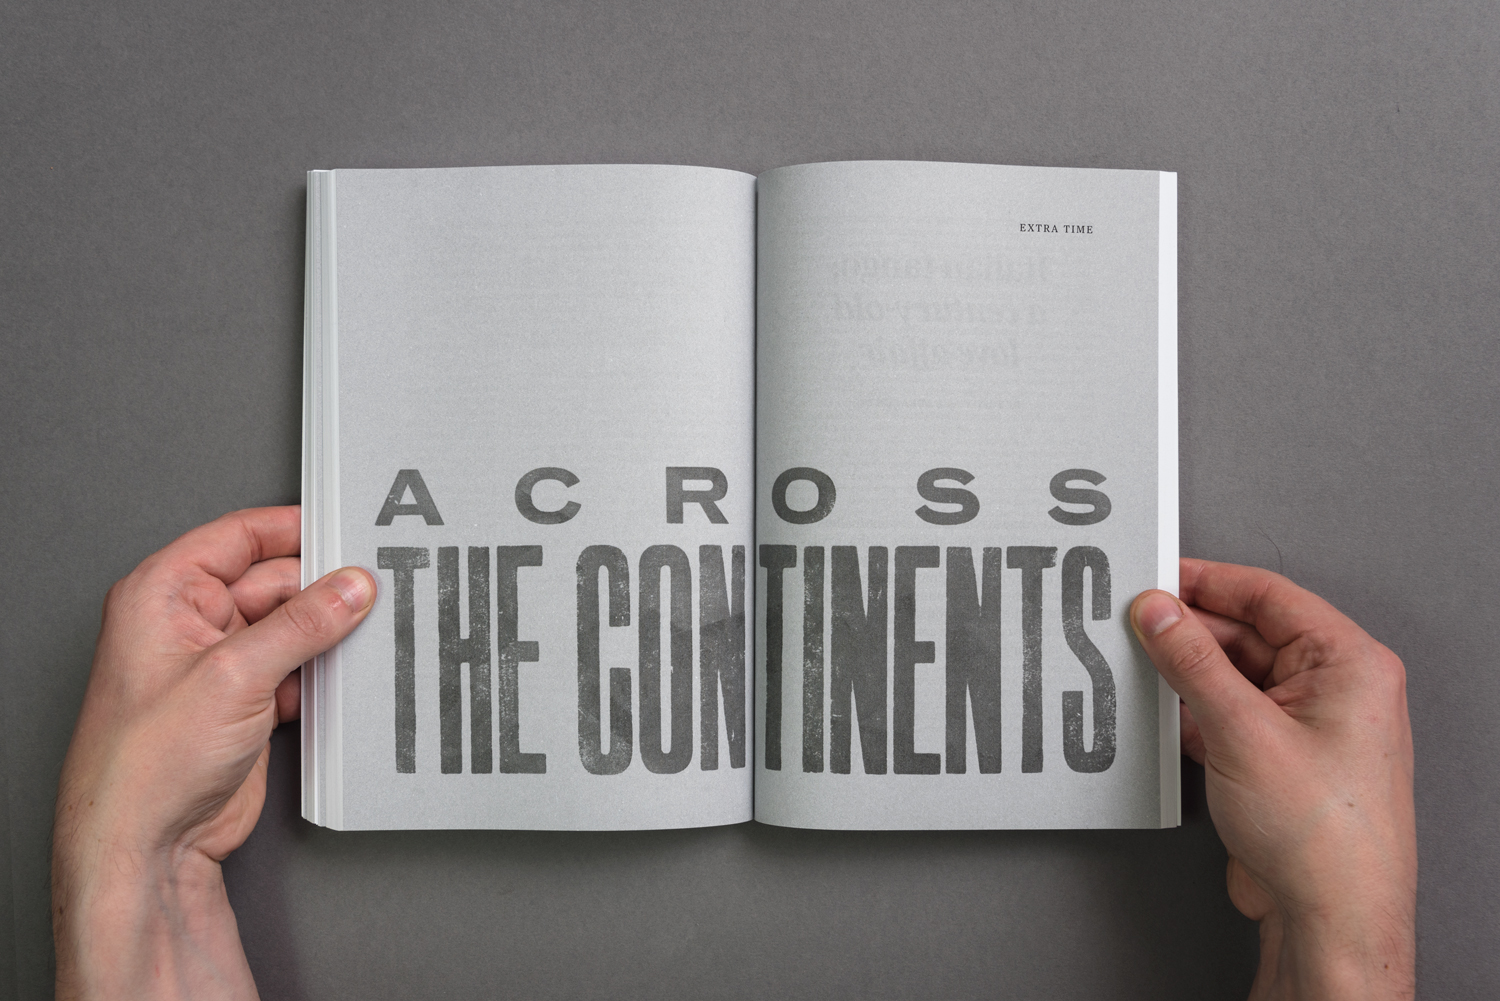 Double page spread created by London-based design studio, private press and typography workshop The Counter Press for Tiro, released by UK independent publisher Rattis Books.